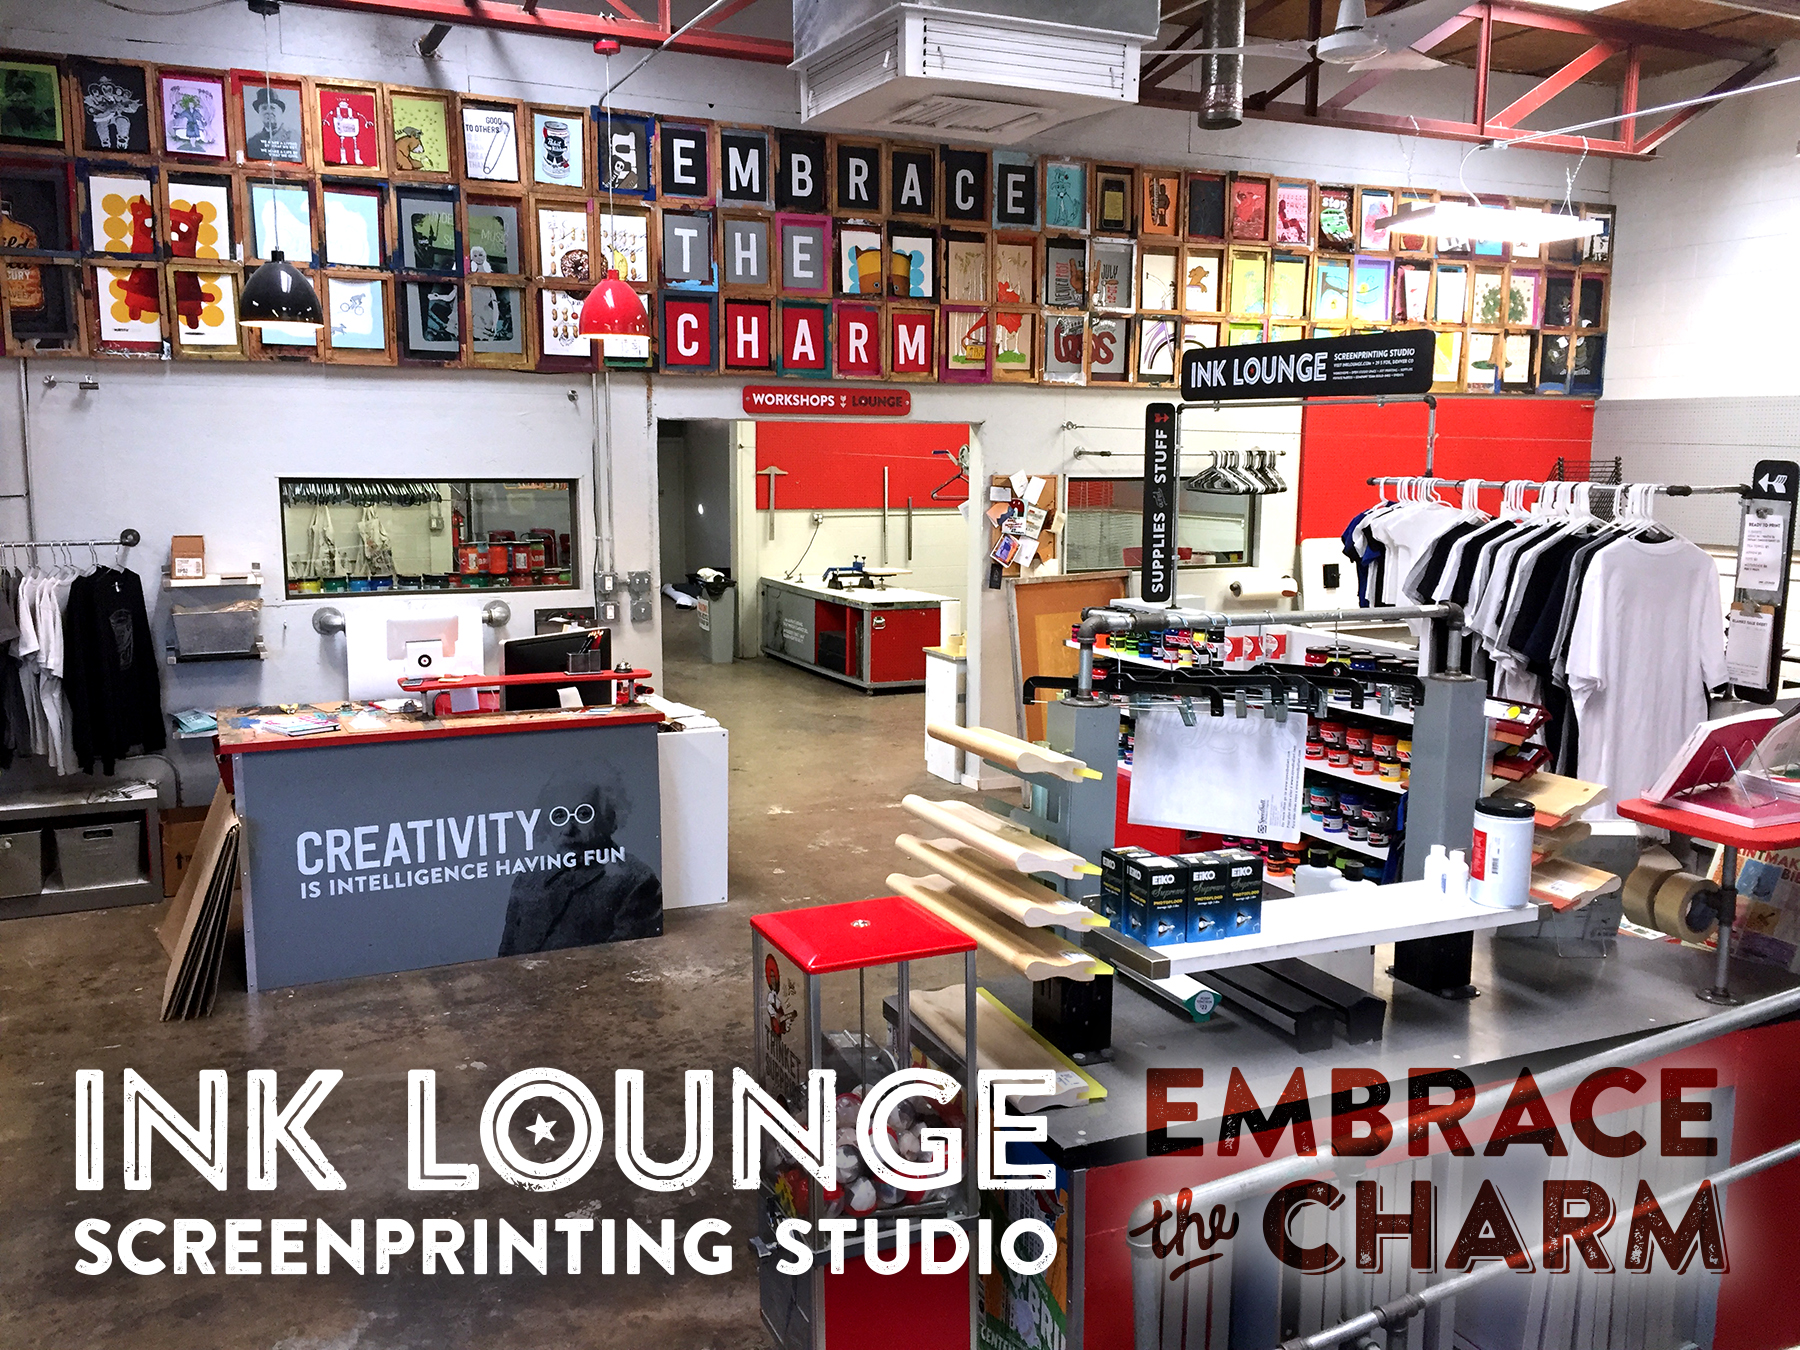 Ink Lounge - 29 S Fox St., Denver, CO 80223